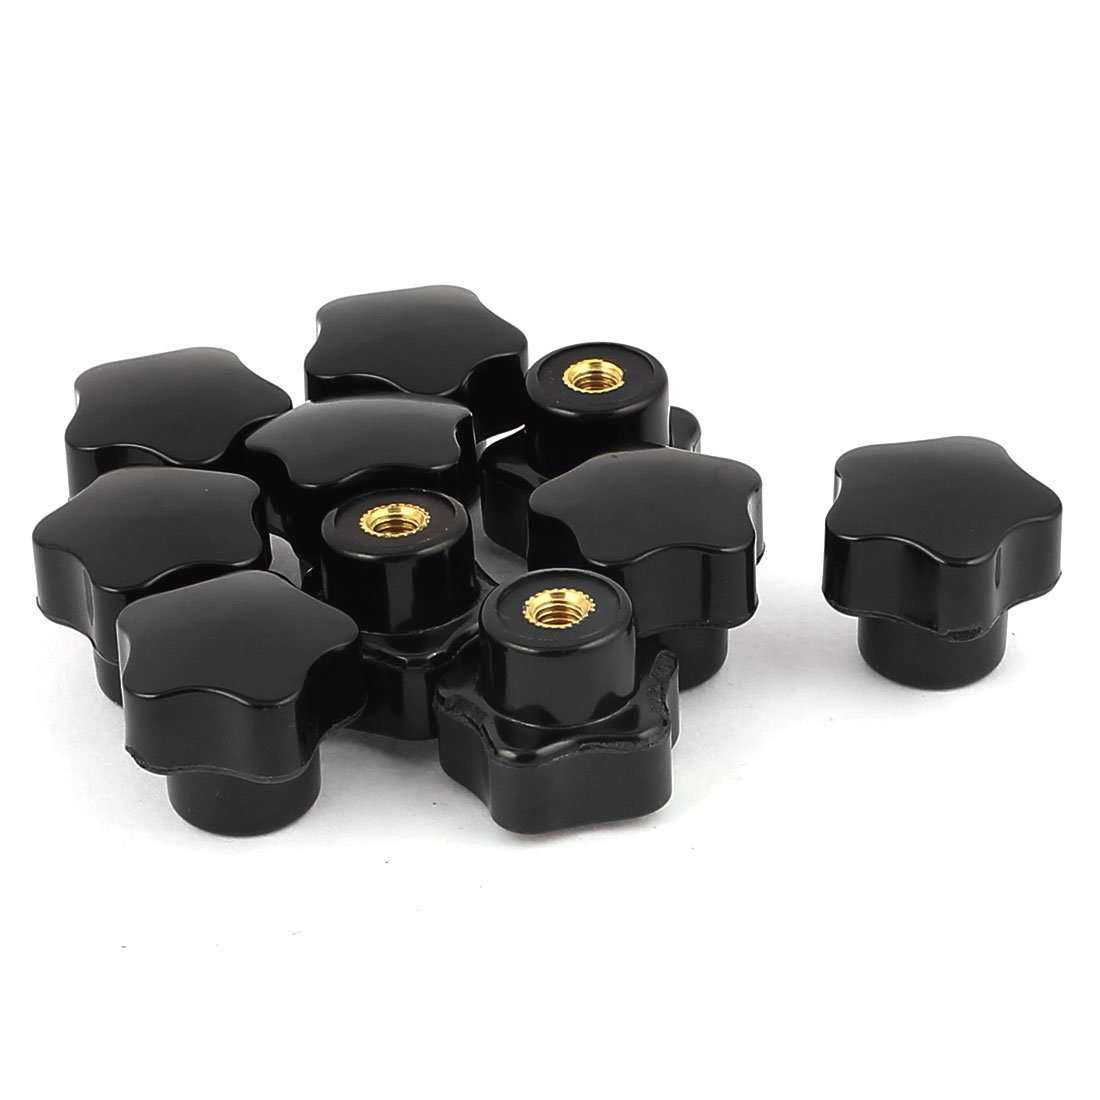 Uxcell a15120700ux0572 Plastic Star Head Clamping Screw Nuts Knob Handle